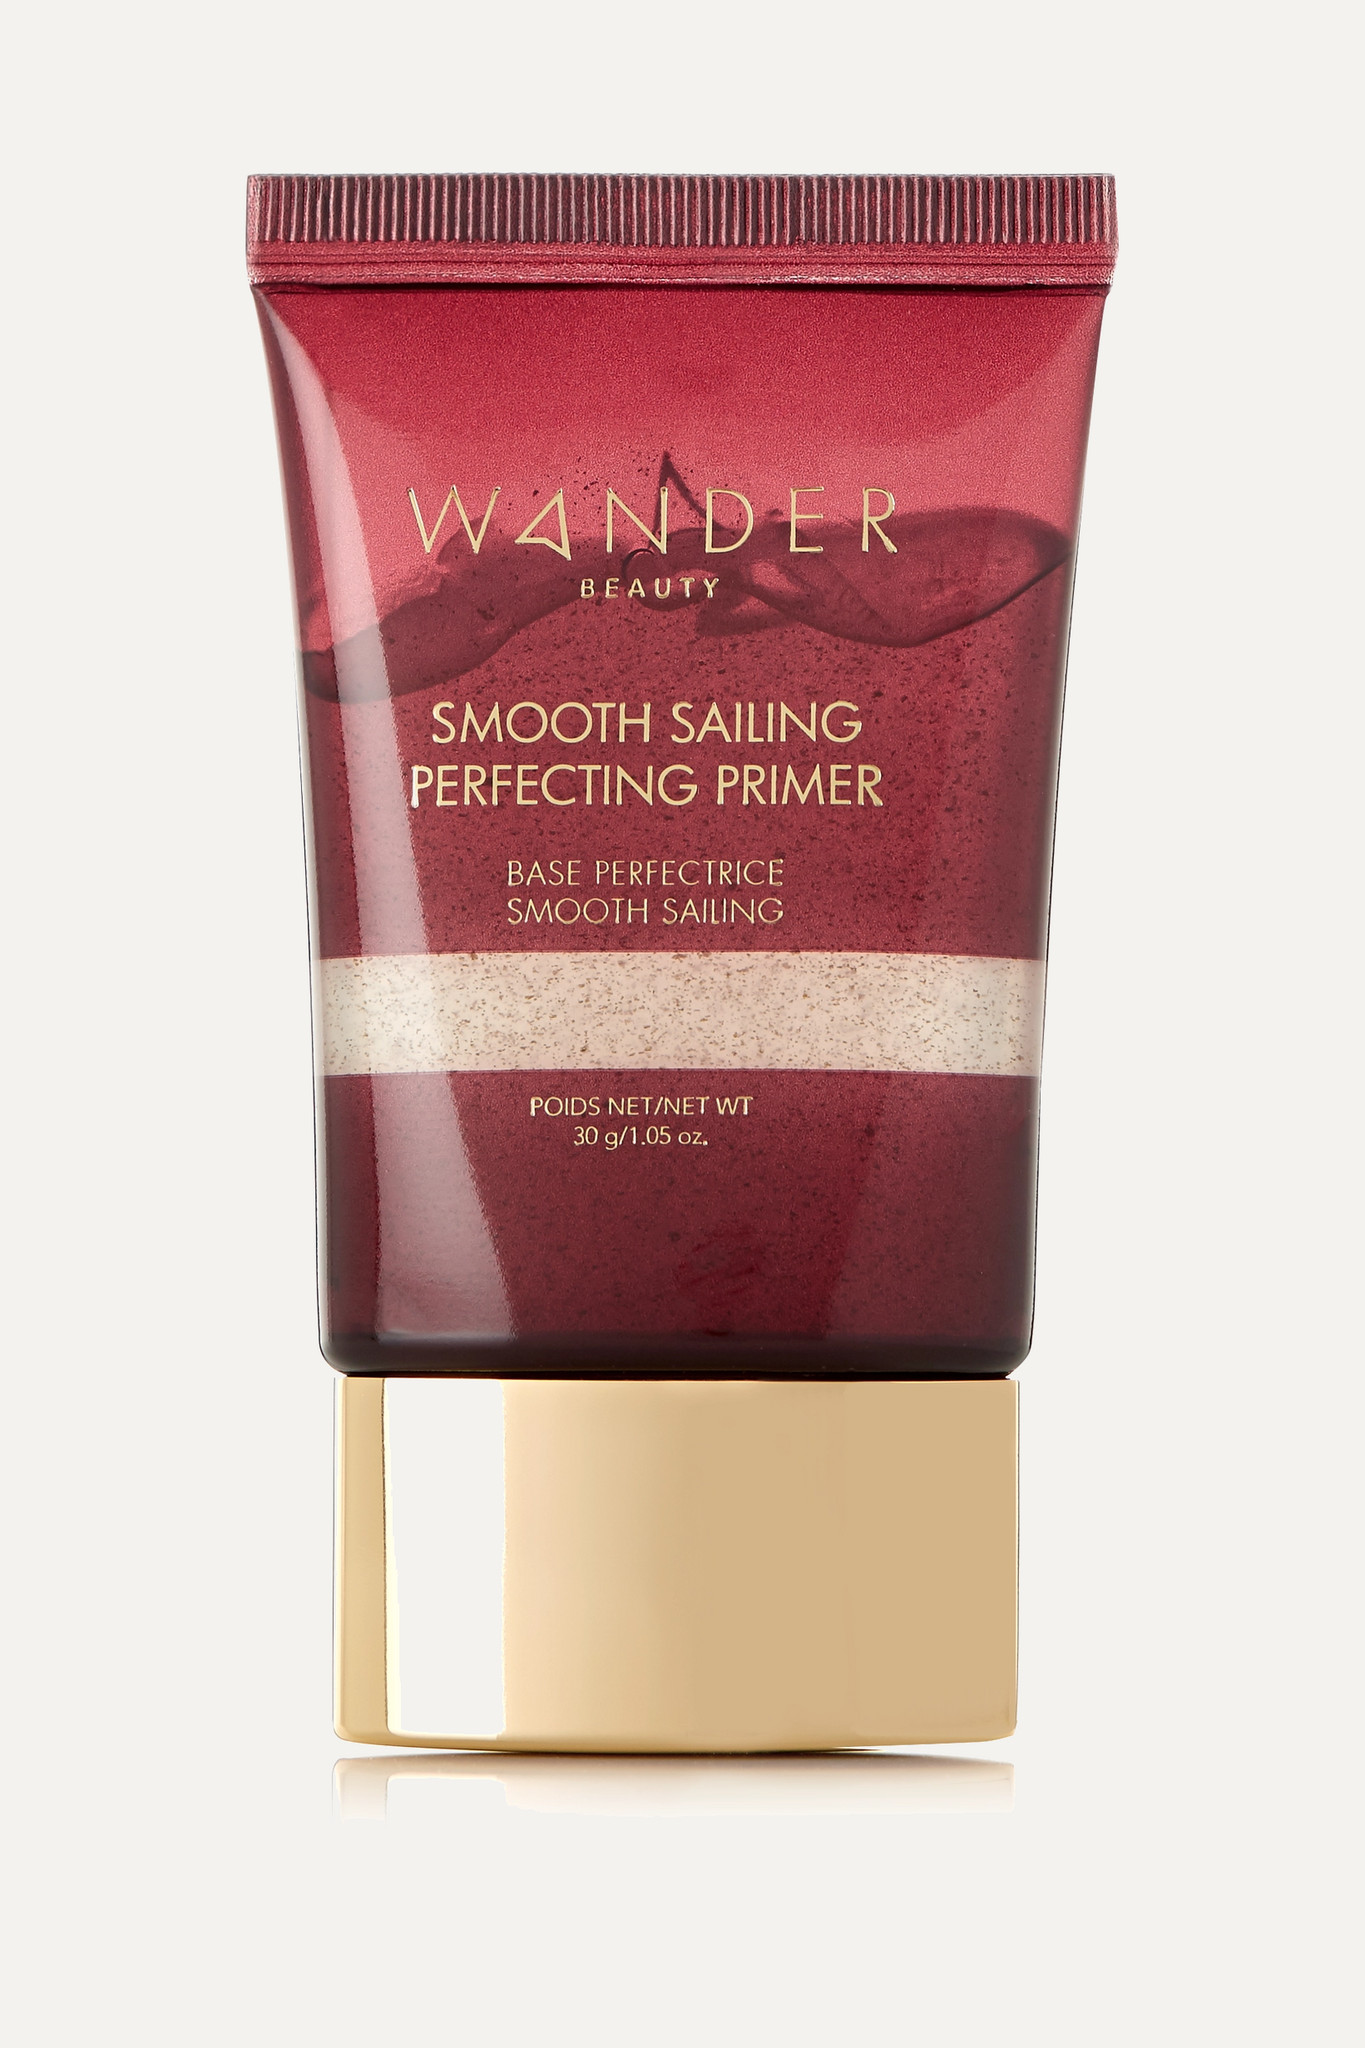 WANDER BEAUTY - Smooth Sailing Perfecting Primer, 30g - one size